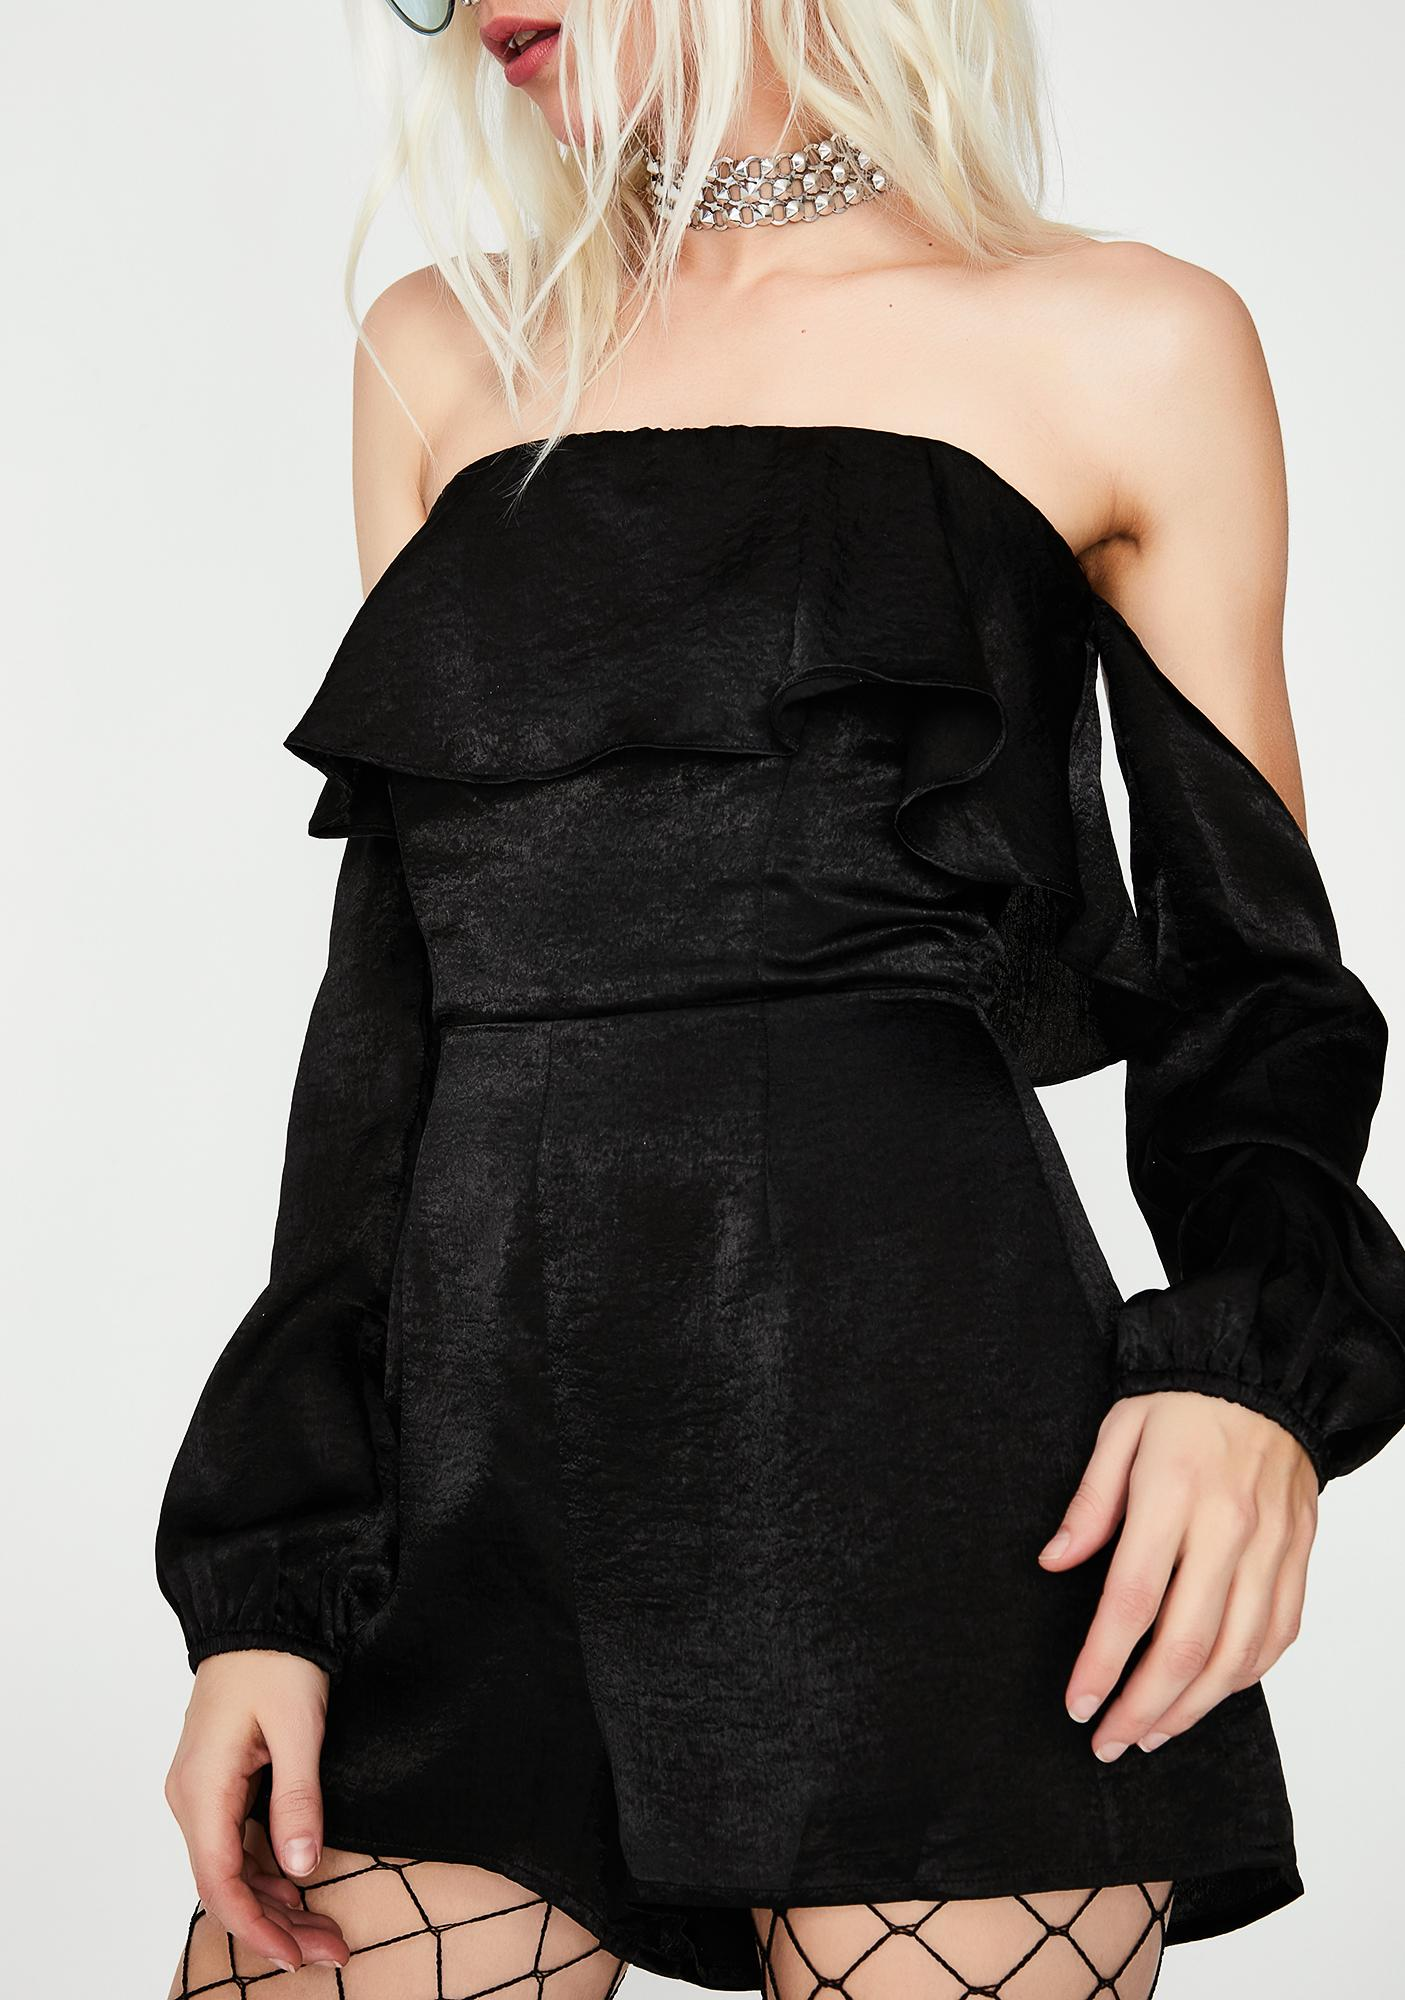 Onyx In Your Dreams Off-Shoulder Romper